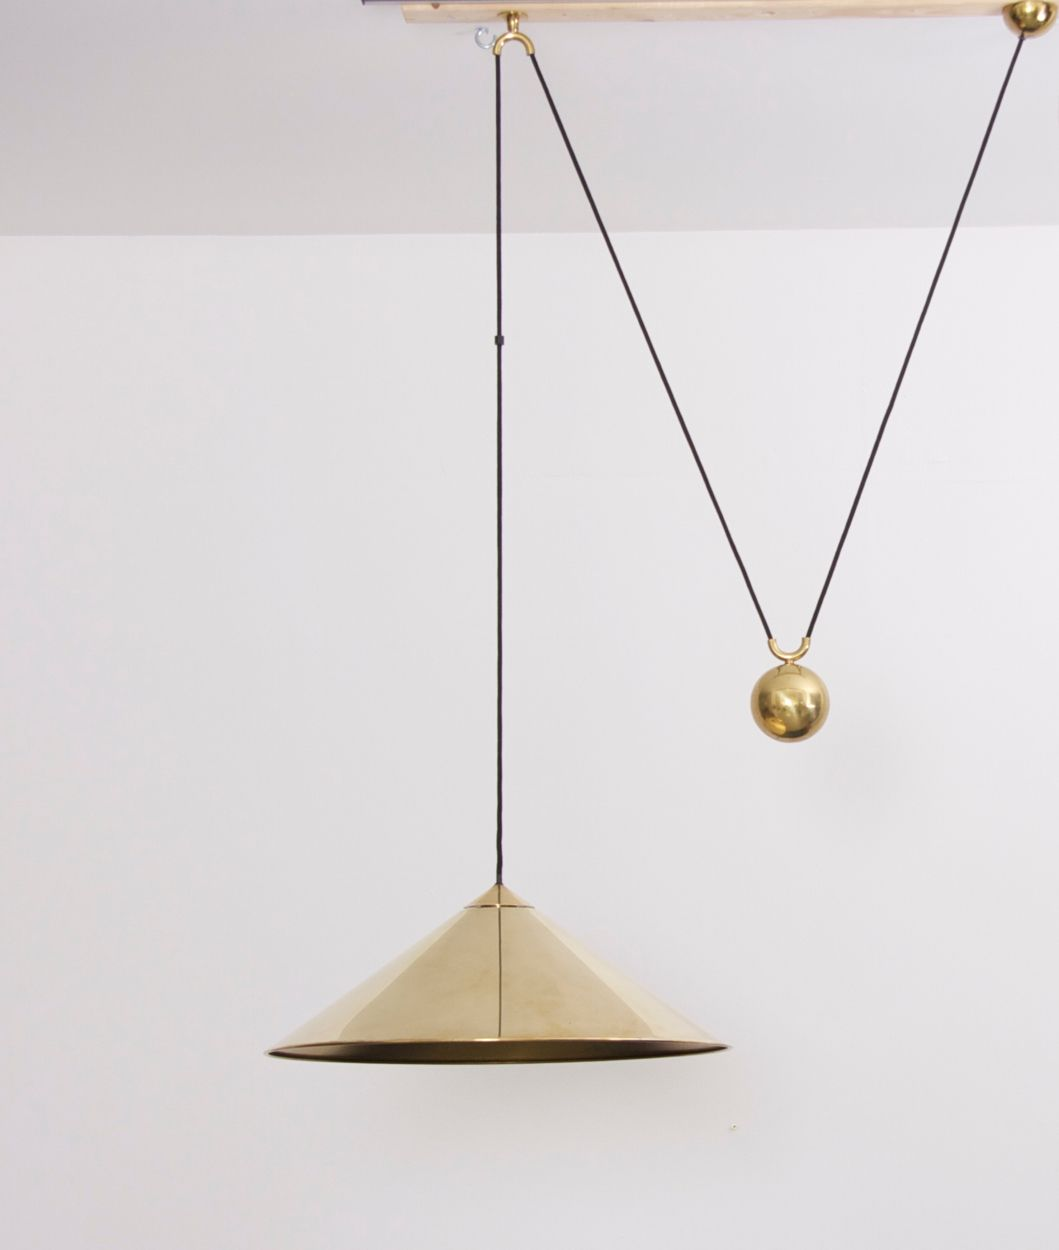 Florian schulz keos extra large counterweight pendant lamp brass florian schulz keos extra large counterweight pendant lamp brass mozeypictures Image collections